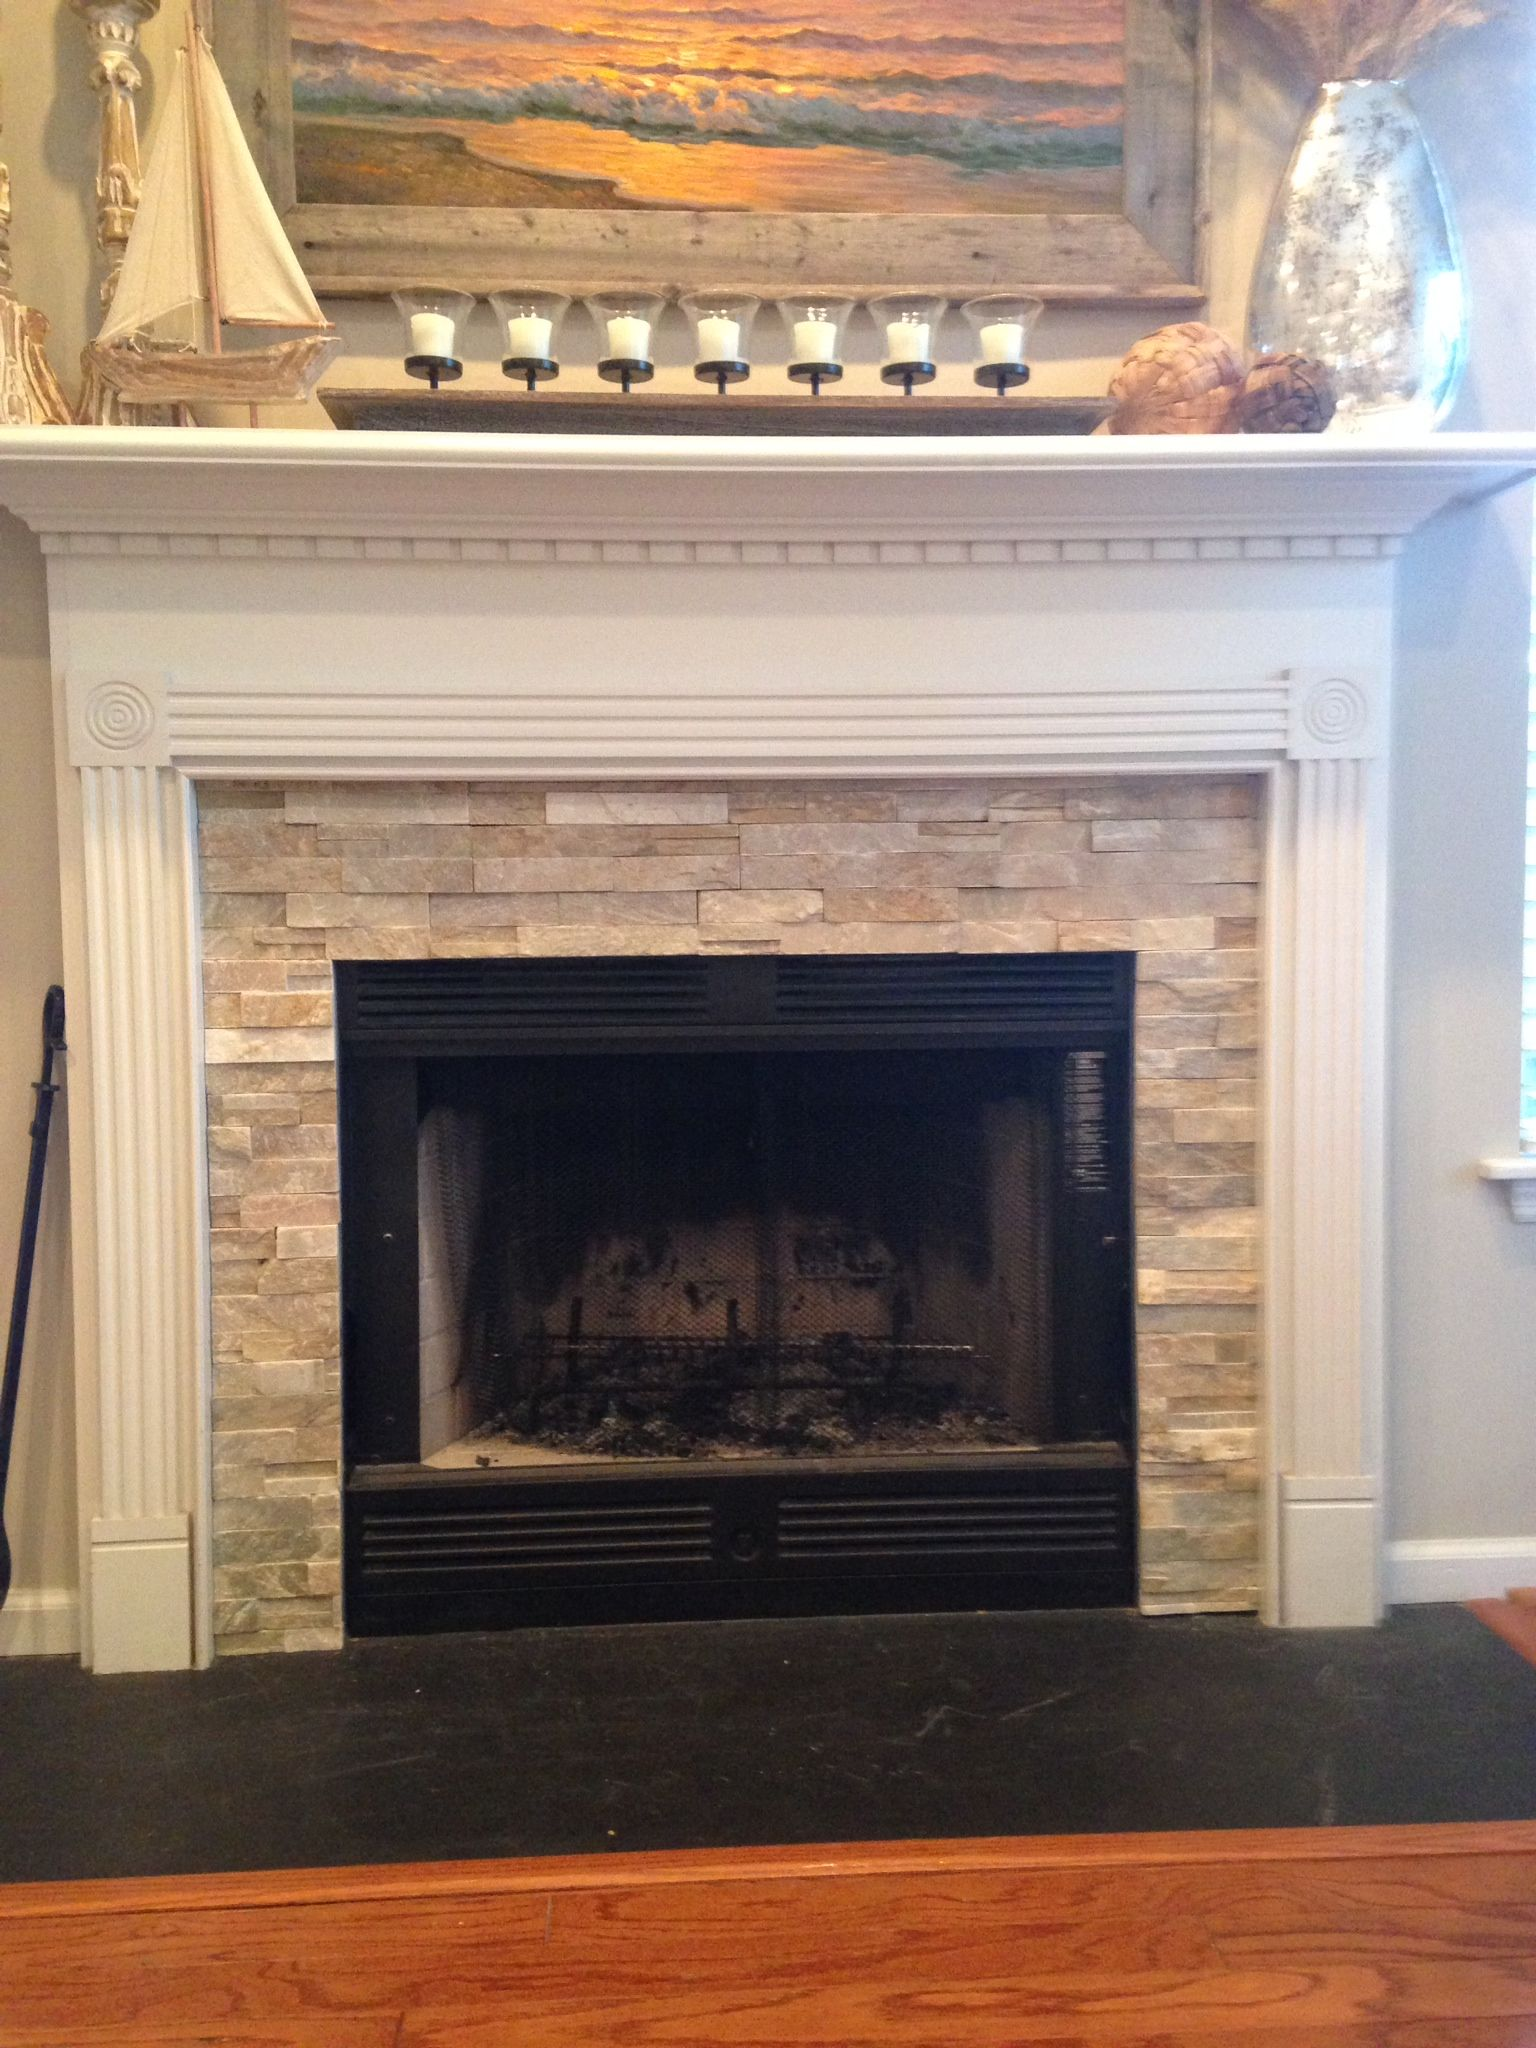 Fireplace Hearth Ideas with Tiles or Slate Inspirational Fireplace Idea Mantel Wainscoting Design Craftsman